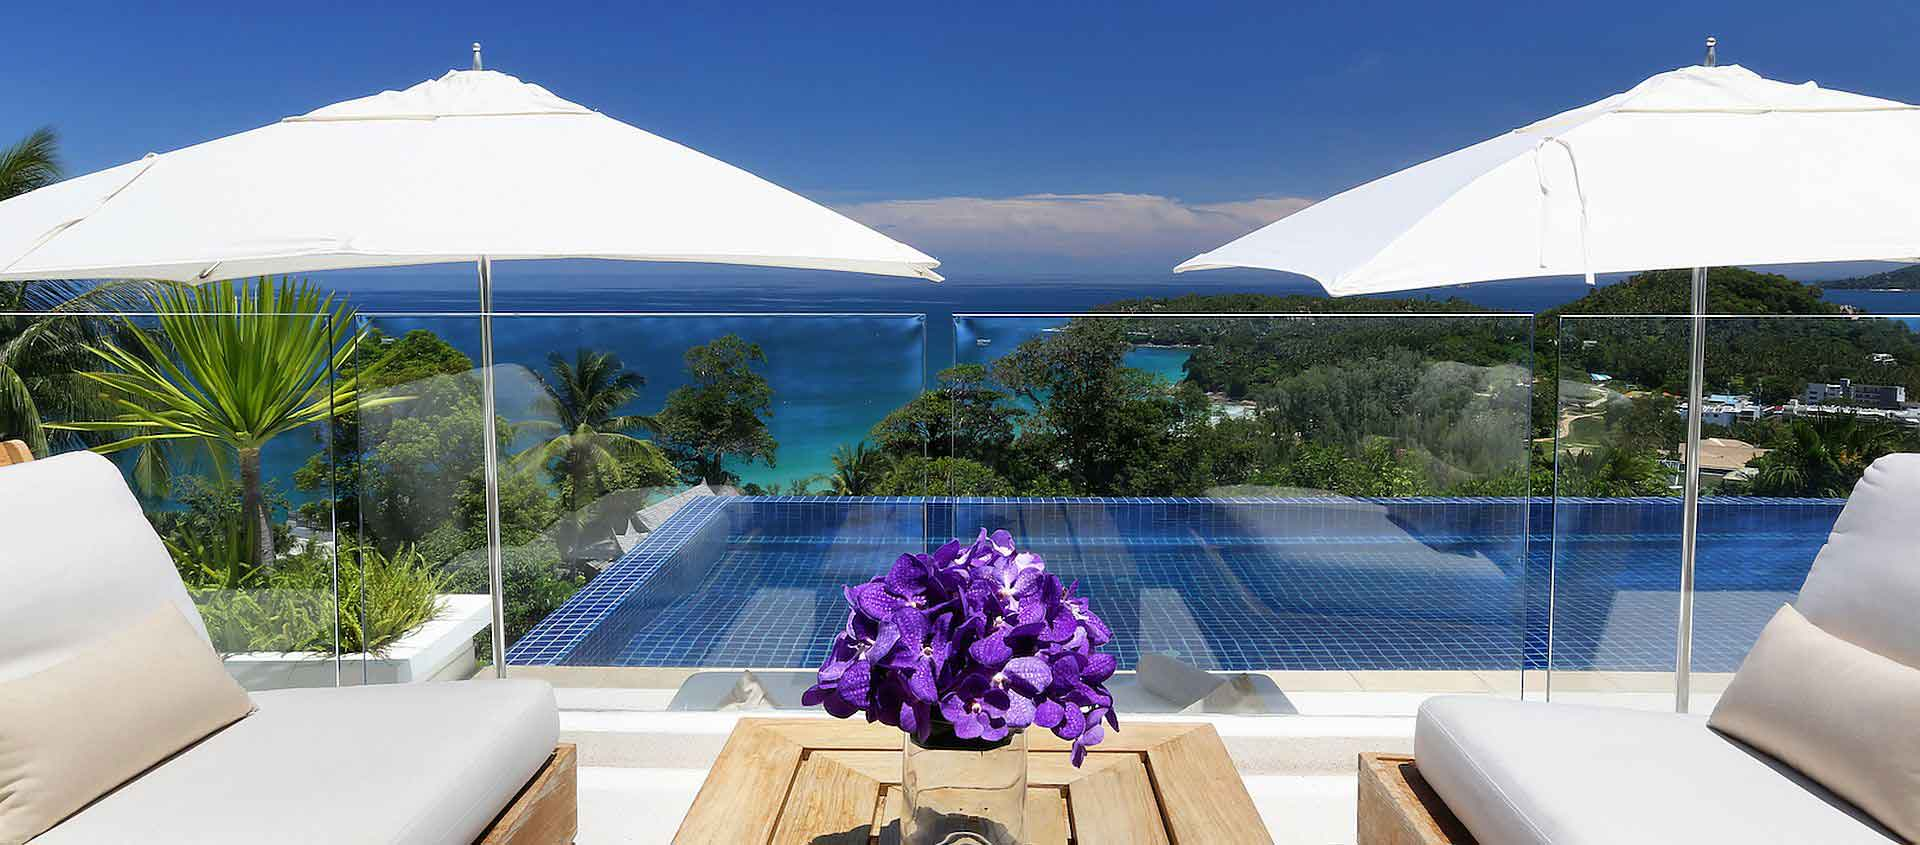 Luxury Holiday Villa With Pool Super Holiday Villas Luxury Vacation Villas Rentals In Phuket